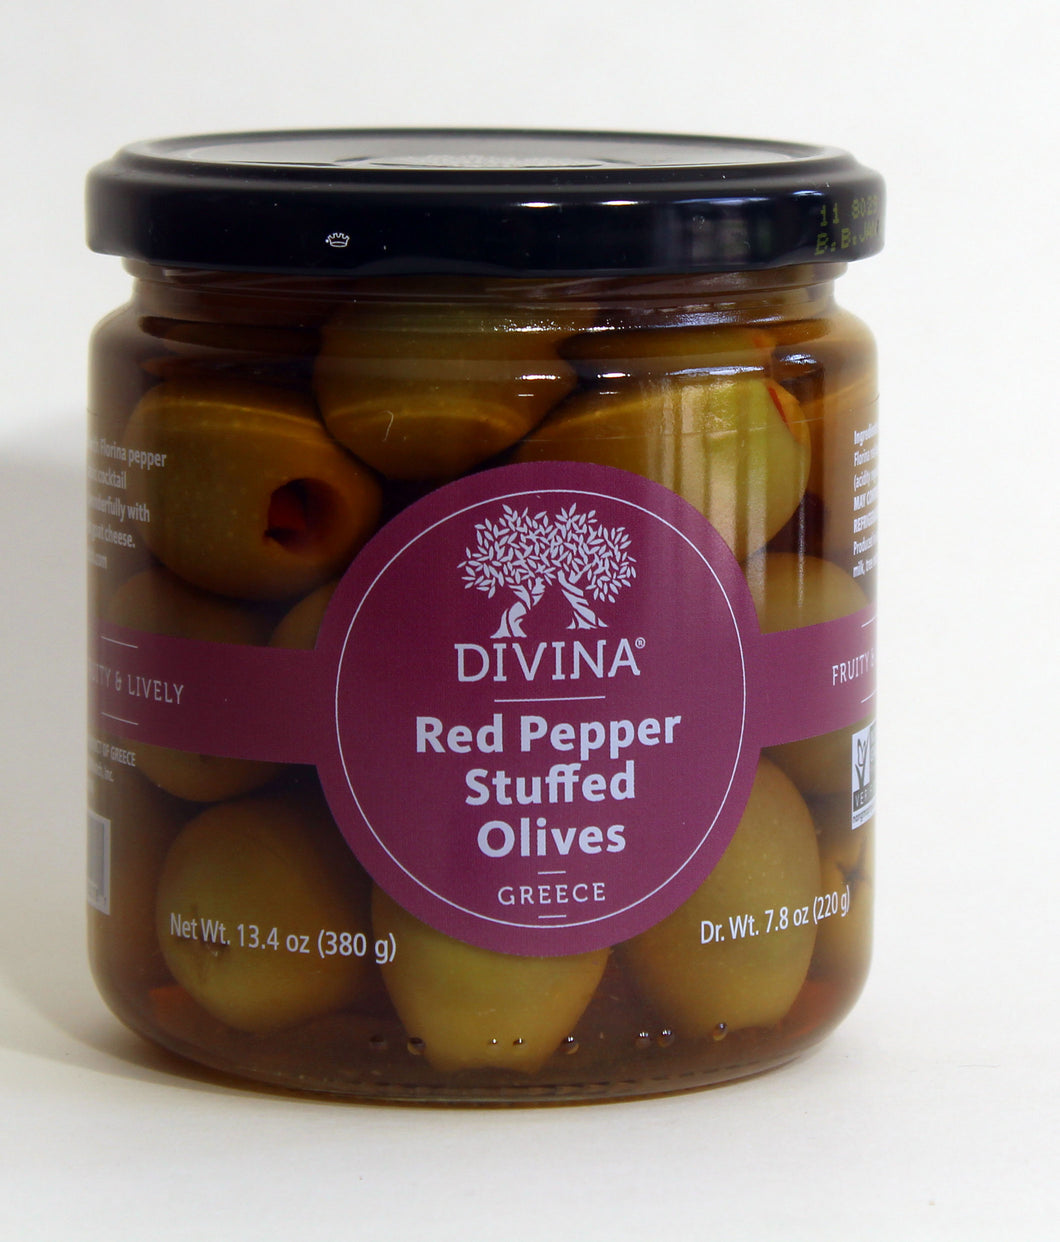 Stuffed Green Olives with red pepper